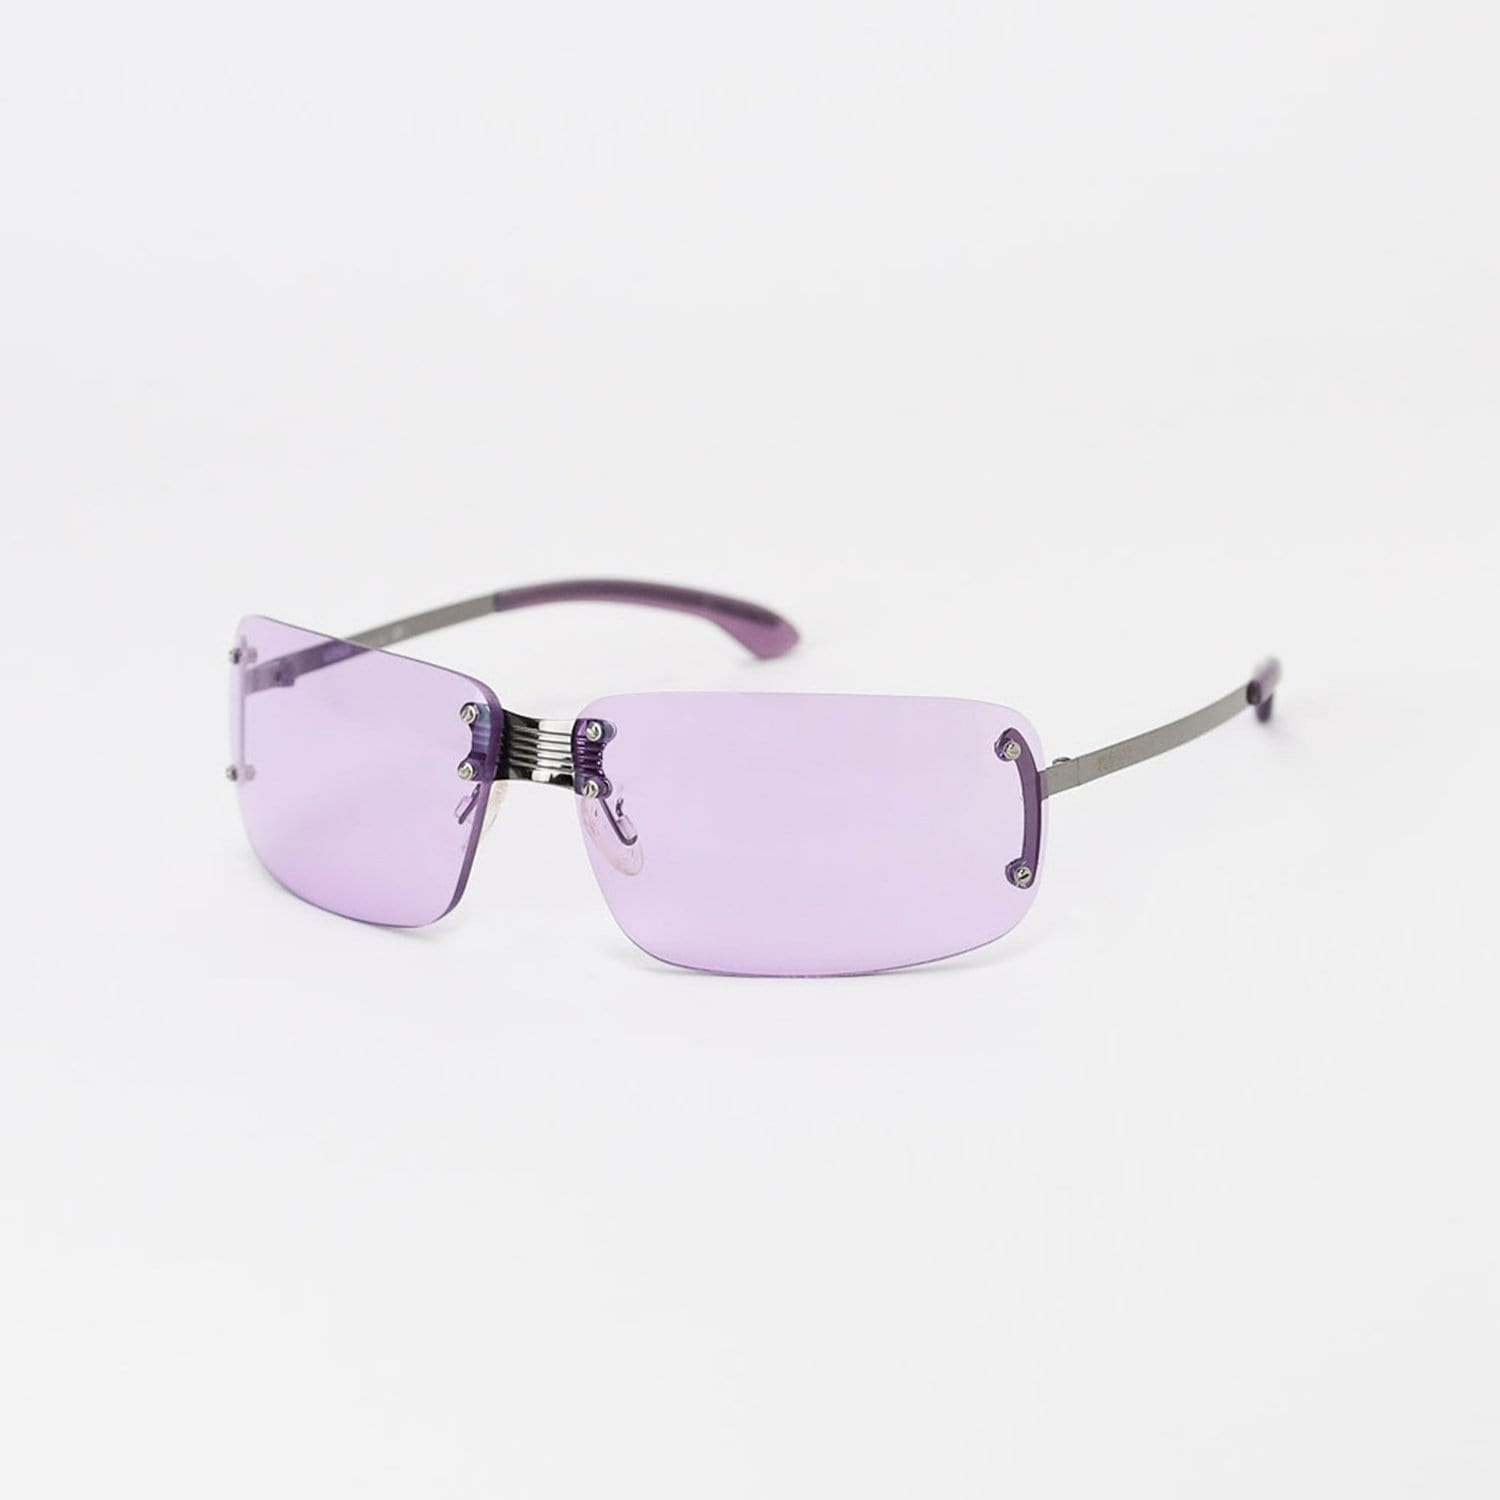 Versace Sunglasses Purple Sunglasses Versace